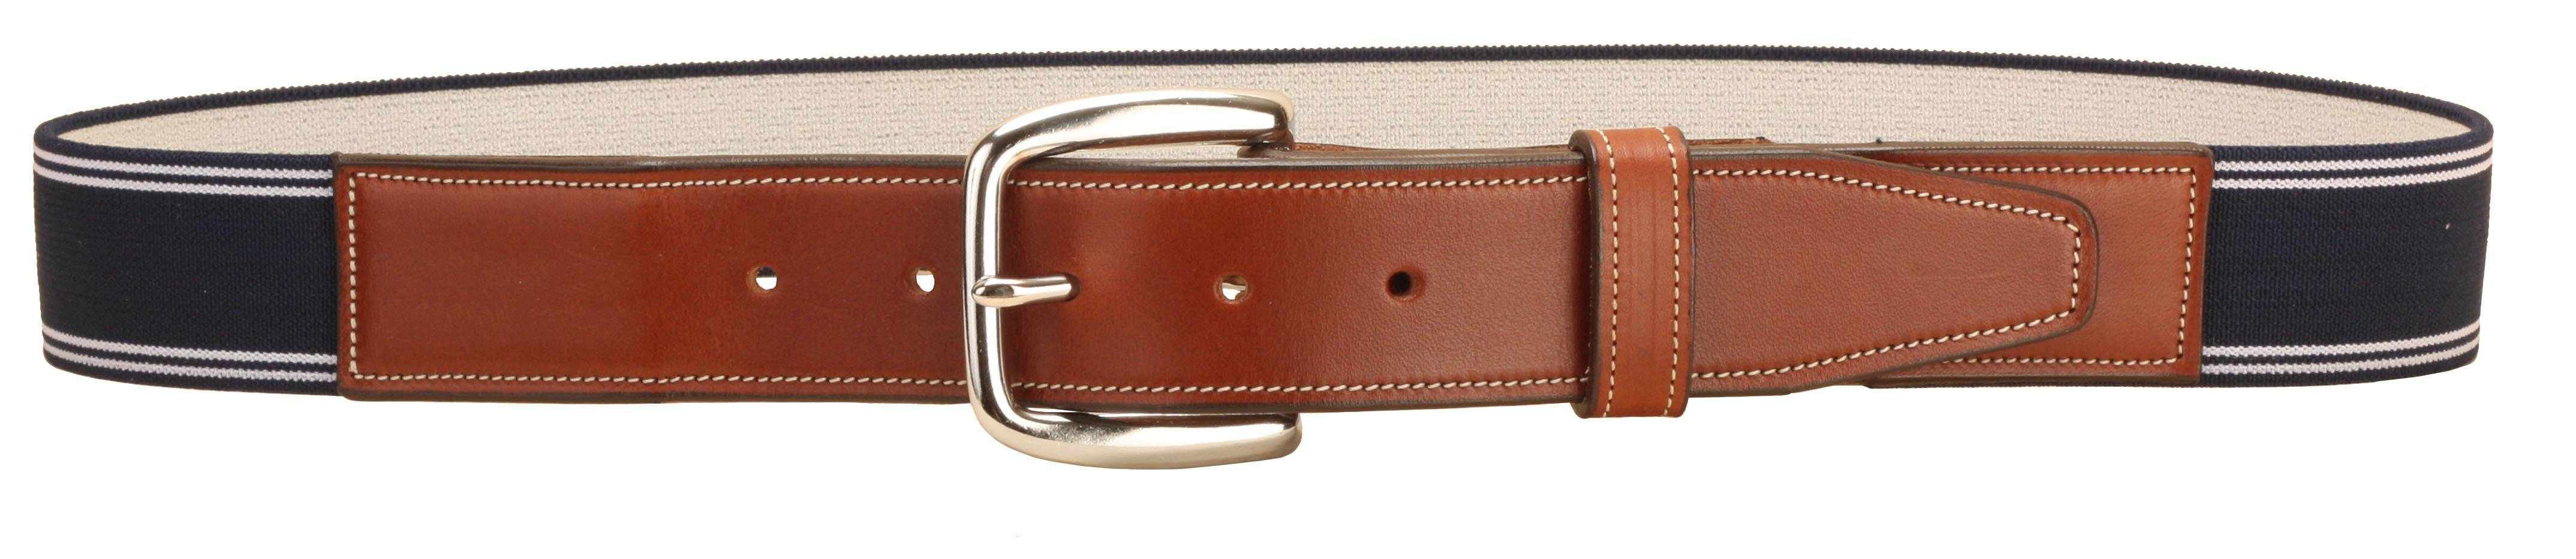 Tory Leather Elastic Belt With Leather Billets